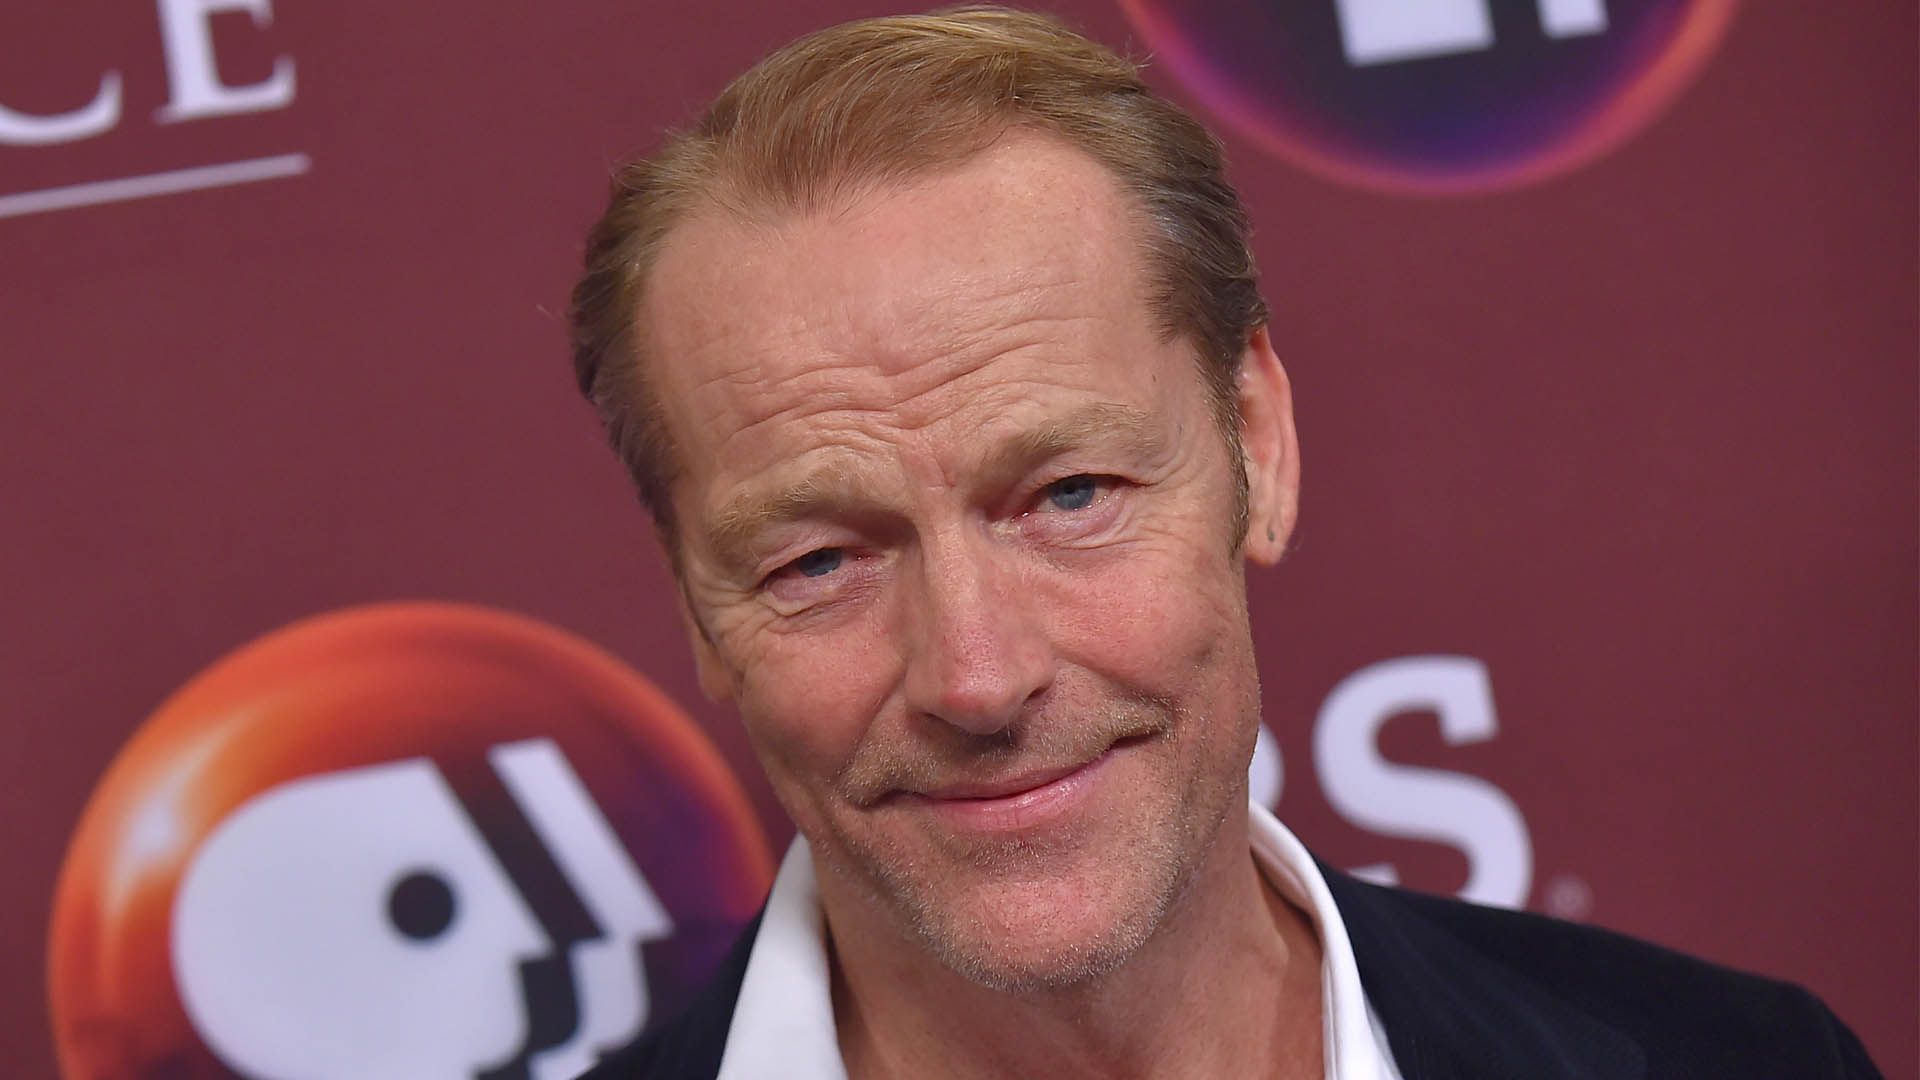 'Game of Thrones' Actor Iain Glen to Play Bruce Wayne in 'Titans'